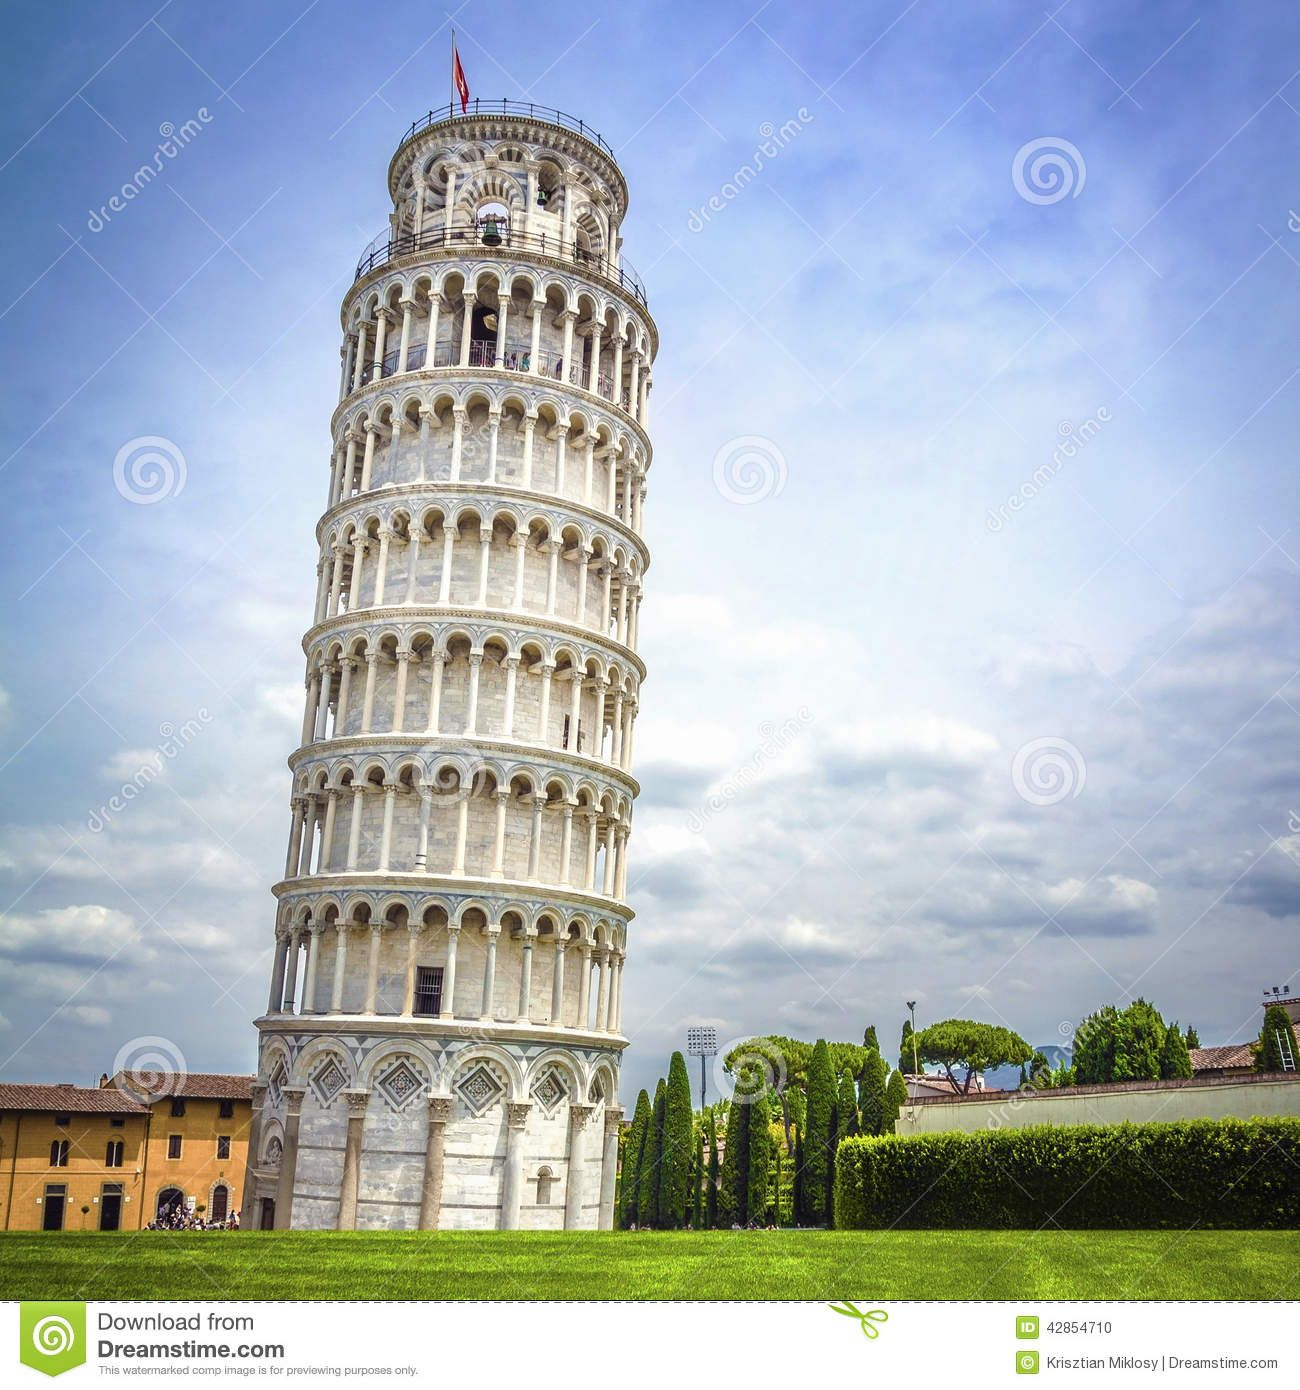 Leaning Tower Of Pisa, Italy Stock Photo - Image: 42854710